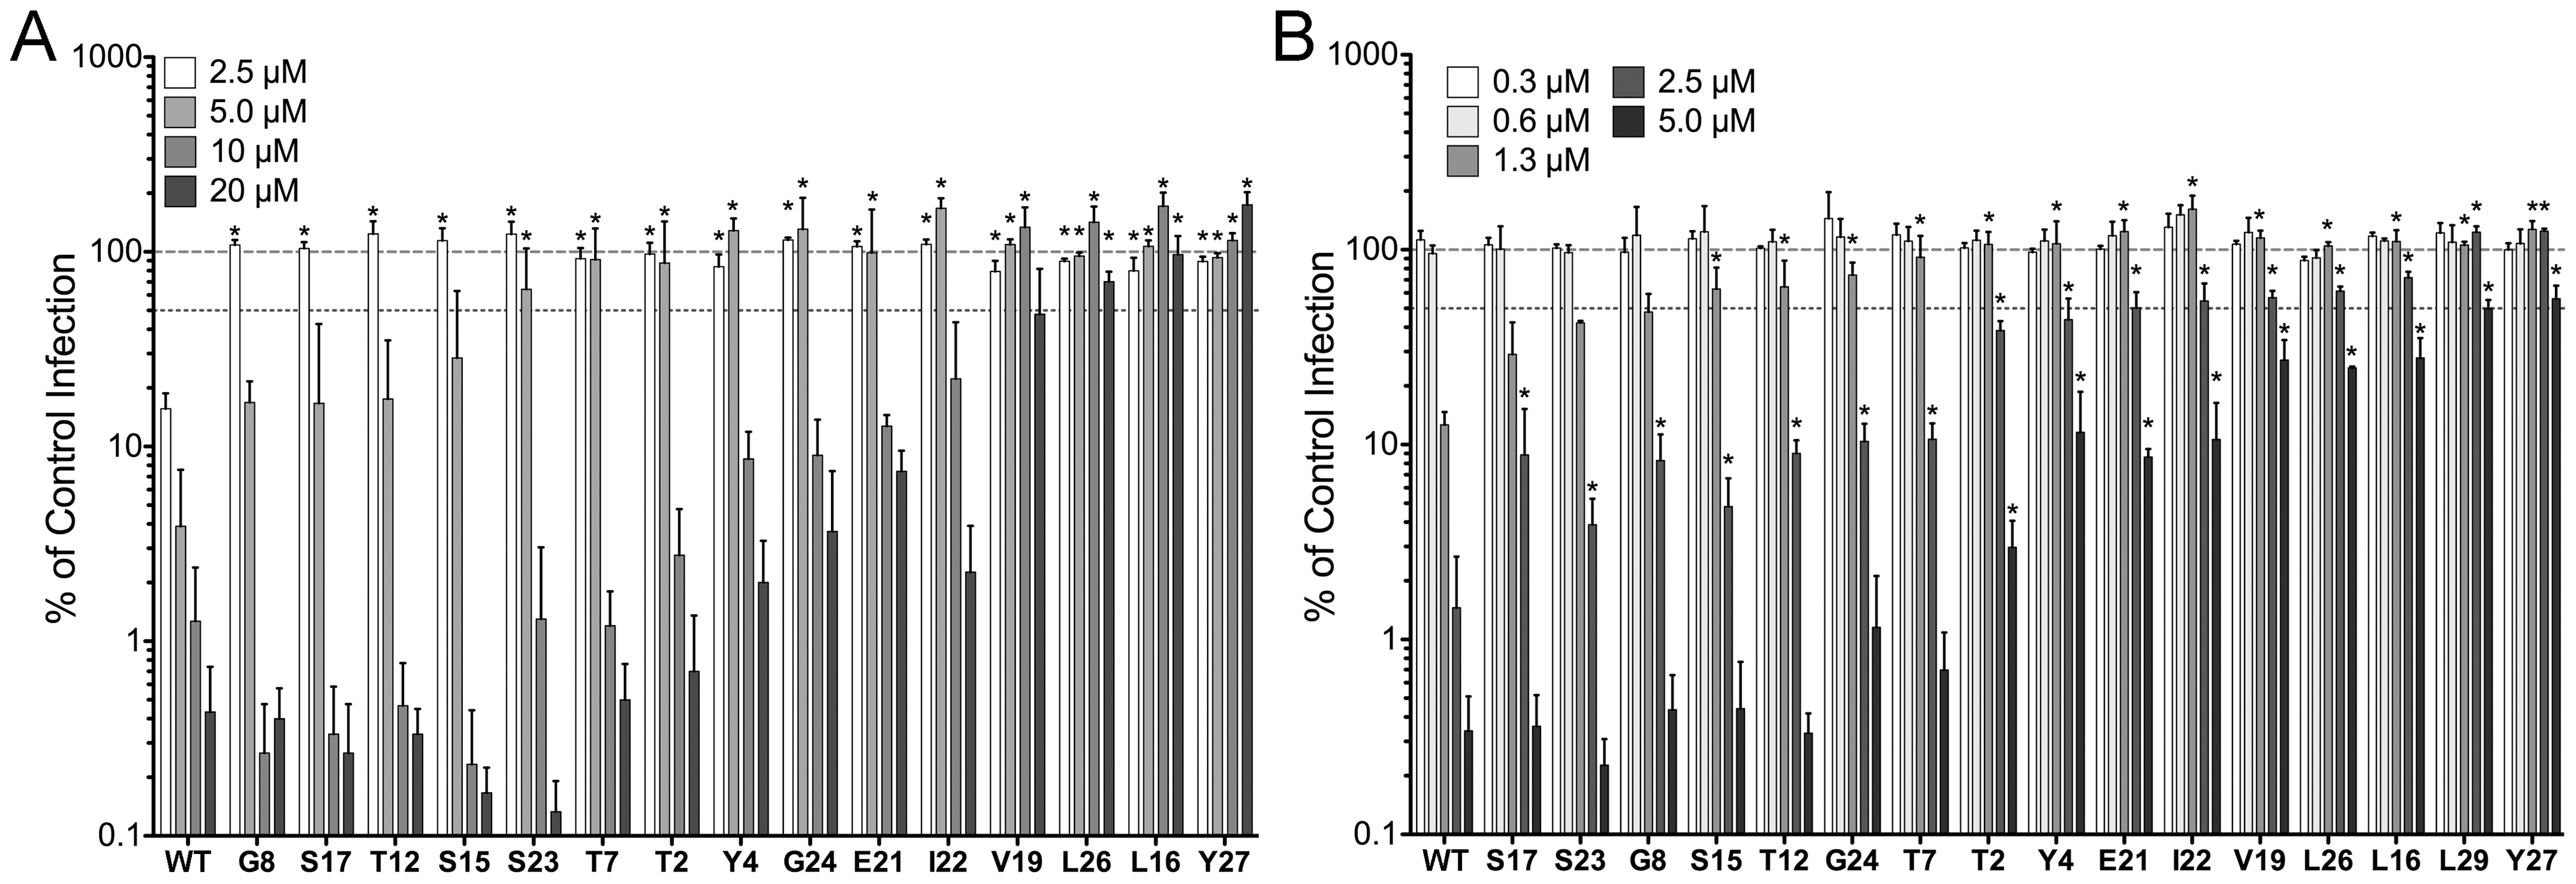 Anti-viral activity of HD5 and HD5 alanine scan mutants.